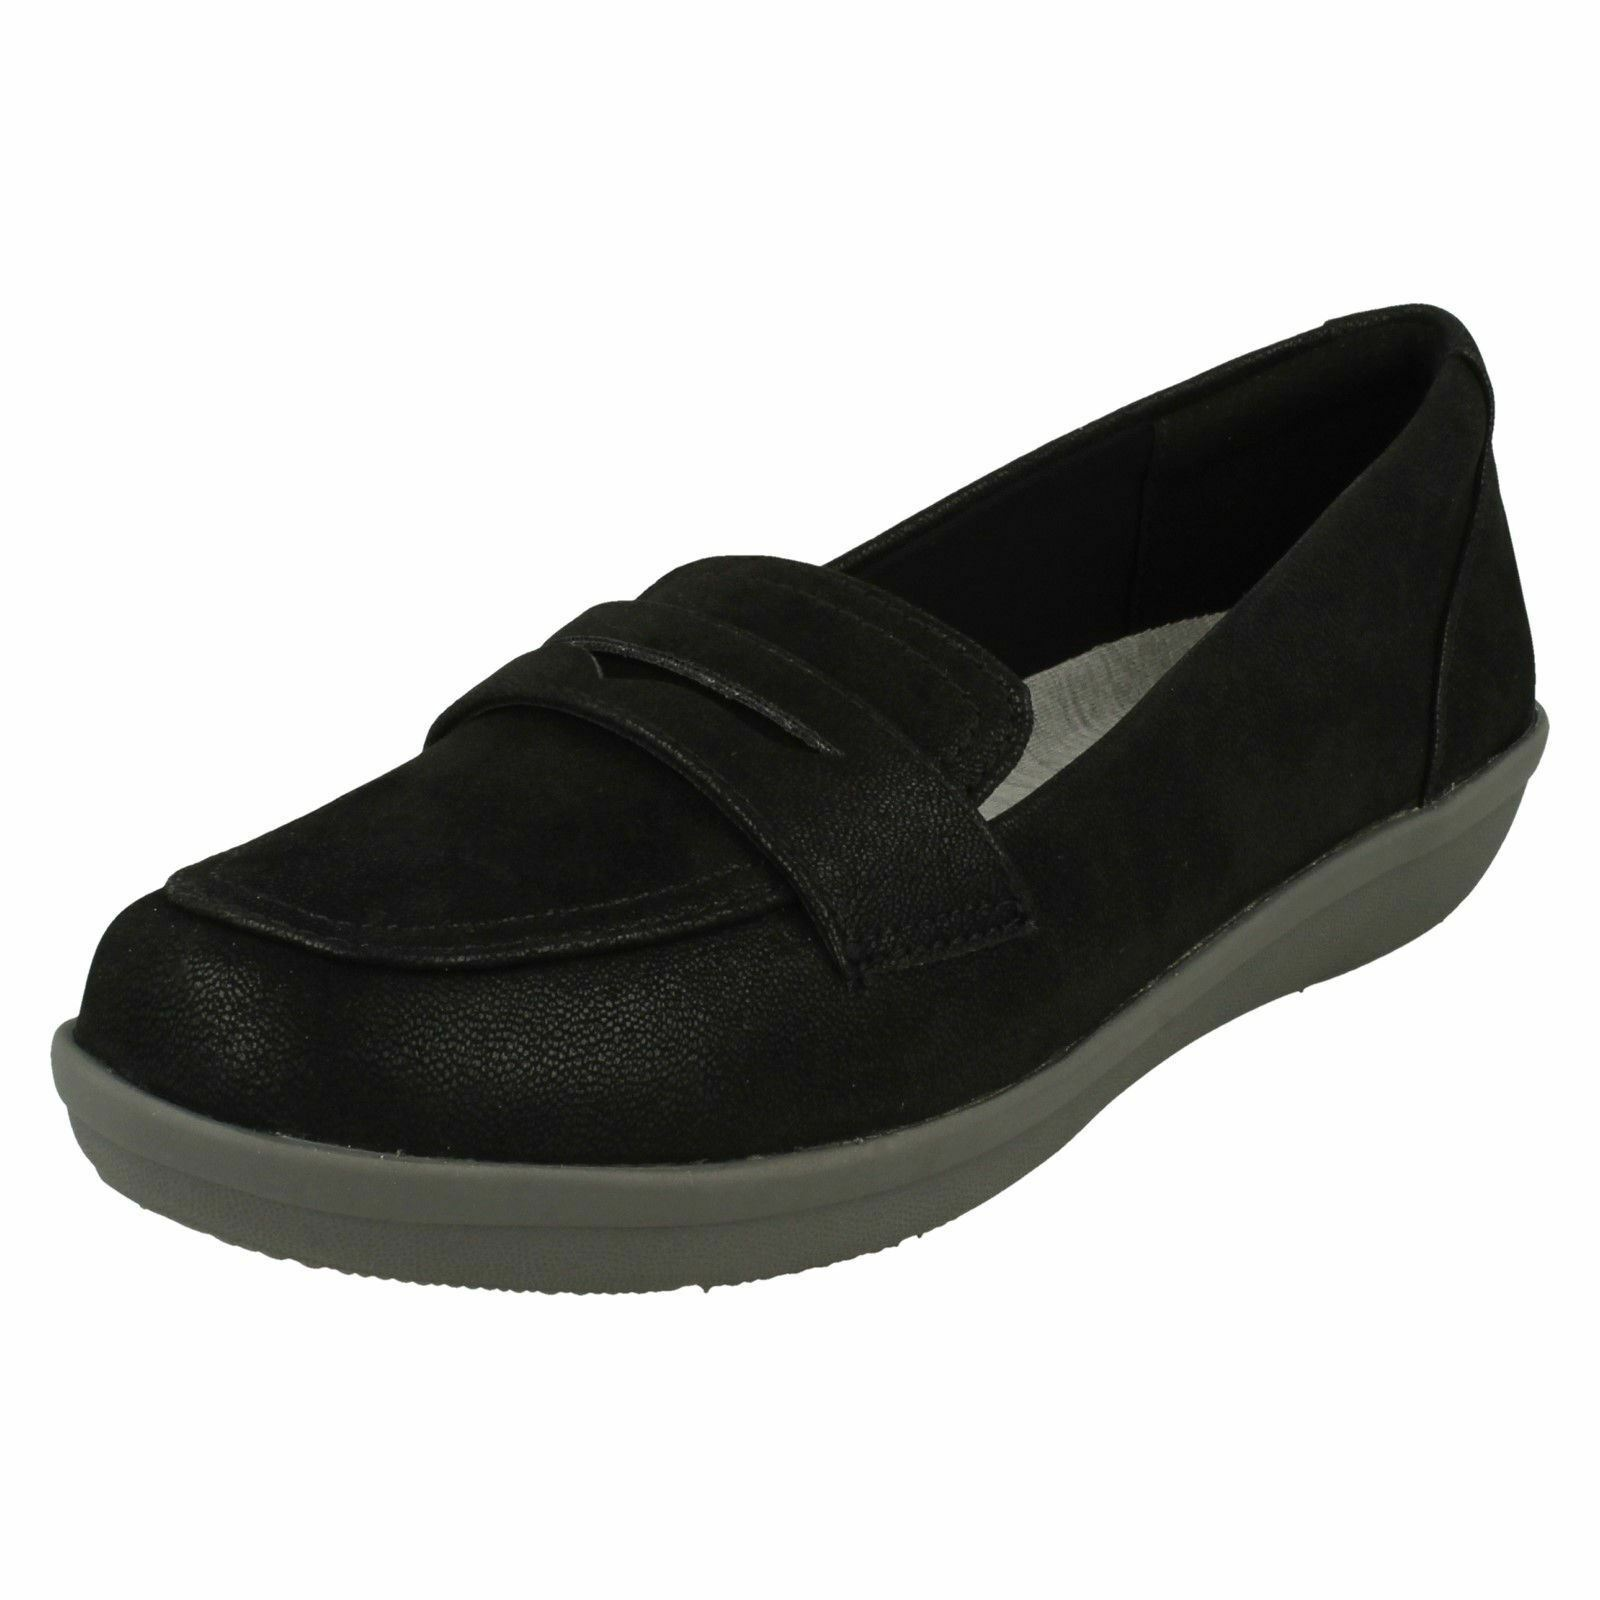 Ladies Cloud Steppers By Clarks Loafer Styled shoes - Ayla Form